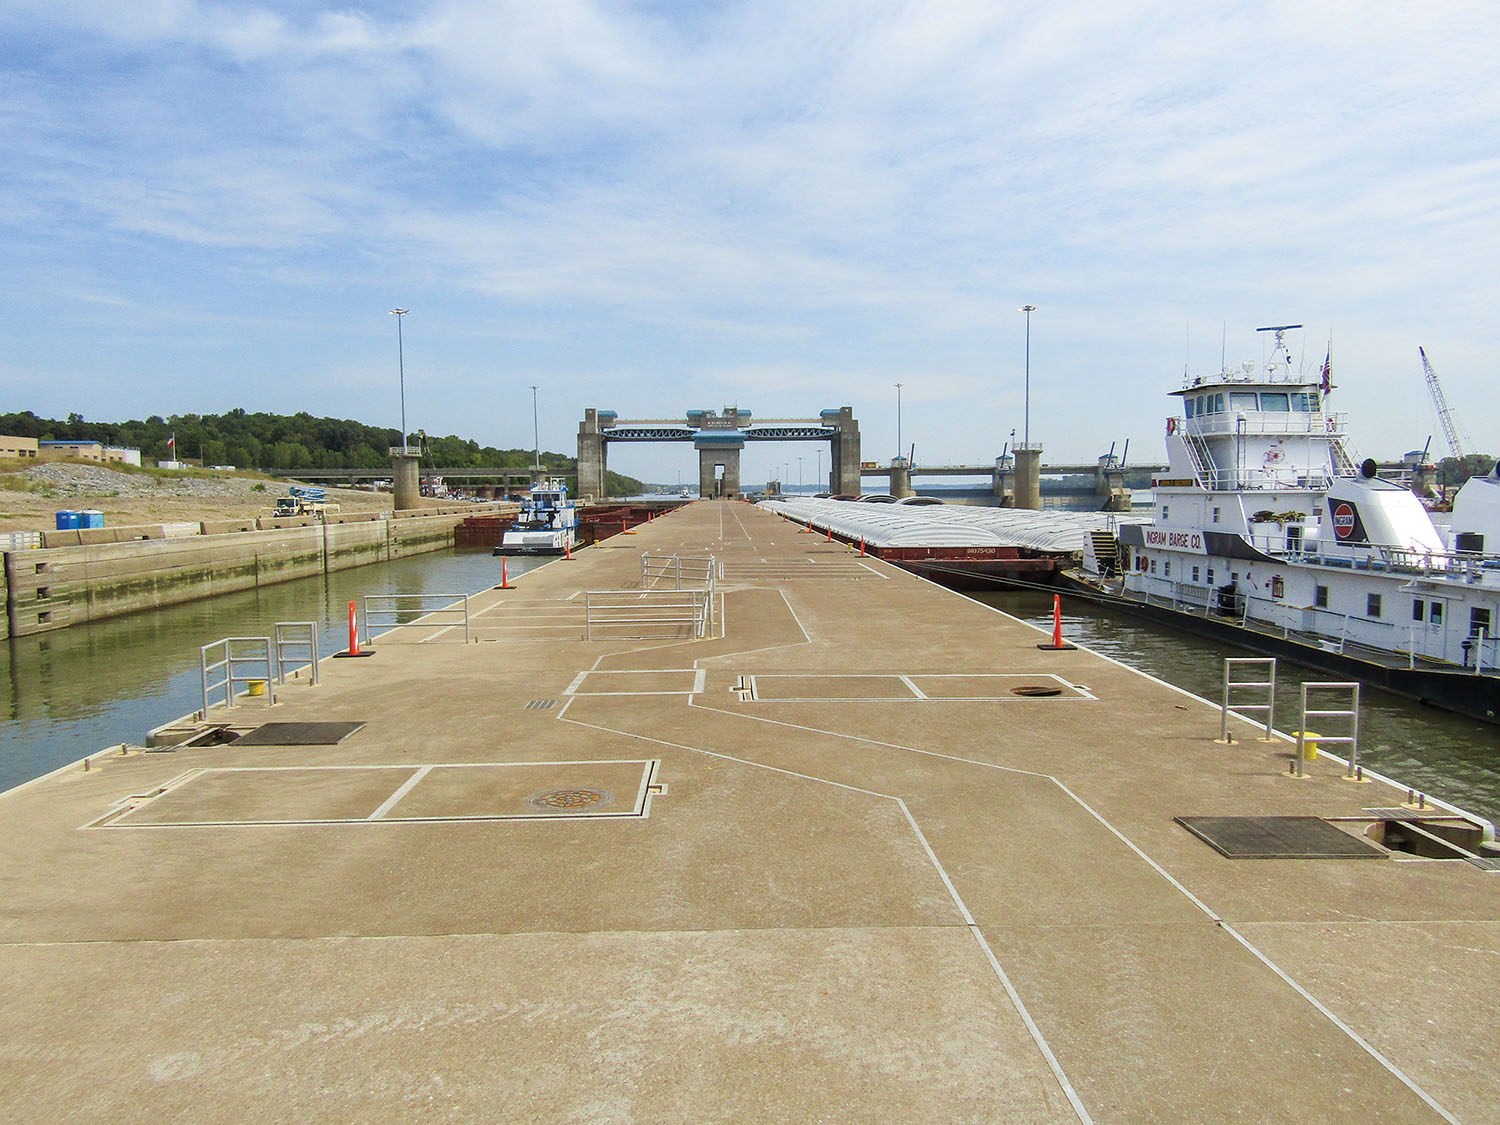 "—Photo courtesy of Louisville Engineer District Two upbound tows lock through at Olmsted Locks and Dam in September 2019. In June, the Corps raised the wickets for the first time in 2020, the fourth time since Olmsted opened in August 2018. By Shelley Byrne River traffic has locked through the twin 1,200-foot-by-110-foot chambers at Olmsted Locks and Dam for the first time this year and only the fourth time in the project's history. ""The weather conditions over the past couple of years have been unique, but raising it in June is much more normal,"" said Ryan Lawrence, assistant operations manager for the Louisville Engineer District's locks and dams project office. Olmsted personnel began raising the wicket dam June 18. It had also been raised in August 2018, August 2019 and November 2019, for a total of about 100 days, Lawrence said. The longest period was in August 2019, when the wicket dam held pool for 62 days at 301.5 feet above sea level, maintaining the pool 46 river miles, back to the Smithland Locks and Dam. A more typical elevation at Olmsted is 295 to 300 feet, based on a hinged pool that takes advantage of the natural slope of the river. Crews began lowering the wickets June 23 in response to rainfall in the upper Ohio Valley, but Lawrence said they may need to go back up again in another two weeks or so, given current forecasting that calls for less rain and a falling Mississippi River. The Corps said it expects to raise and lower the wickets an average of four times each season. ""But so far we haven't really had an average year,"" Lawrence said. ""You do what needs to be done to maintain the river elevations."" Given the weather so far this year, the Corps believes this season may be much closer to a typical one than the last two have been. However, Lawrence cautioned, ""As we saw last year, there's no real way to know. We look at historical trends and what we expect with weather patterns."" Although the Corps had plenty of experience with wickets at the former Locks and Dams 52 and 53, Olmsted modernized the process when it opened in August 2018 on the Ohio River near Olmsted, Ill. In addition, instead of a hook blindly grabbing for a bar on the wickets beneath the water, GPS and a sonar camera aid the process. ""They really took the things they learned from 52 and 53 and implemented and improved those things here,"" Lawrence said. The Corps has less experience using tainter gates combined with a wicket dam to control flow. Olmsted has five tainter gates, while the former projects didn't have any, although other Ohio River locks and dams in the district have them. The gates can be opened and closed to maintain the pool without raising and lowering the wickets as frequently. ""We're definitely still learning that,"" Lawrence said, adding that Olmsted has a unique combination of factors since high water on the Mississippi River can back up the Ohio to as far as Olmsted and since levels on Kentucky Lake on the Tennessee River, Lake Barkley on the Cumberland River and on the Ohio at Smithland"